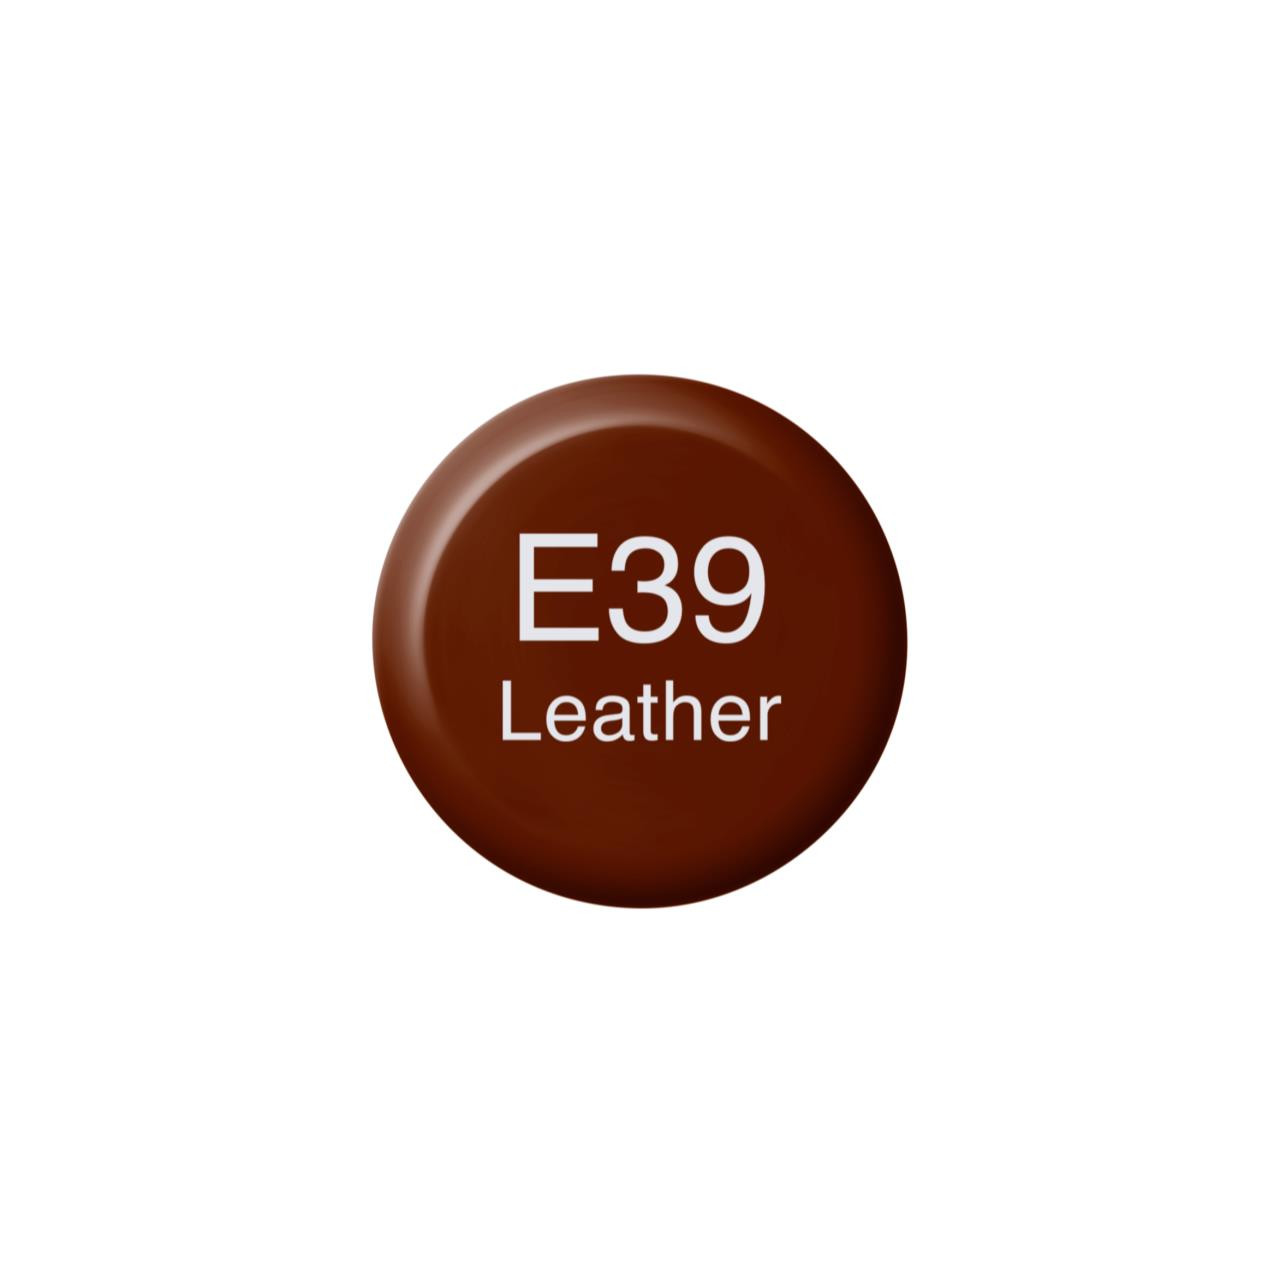 E39 Leather, Copic Ink - 4511338056844